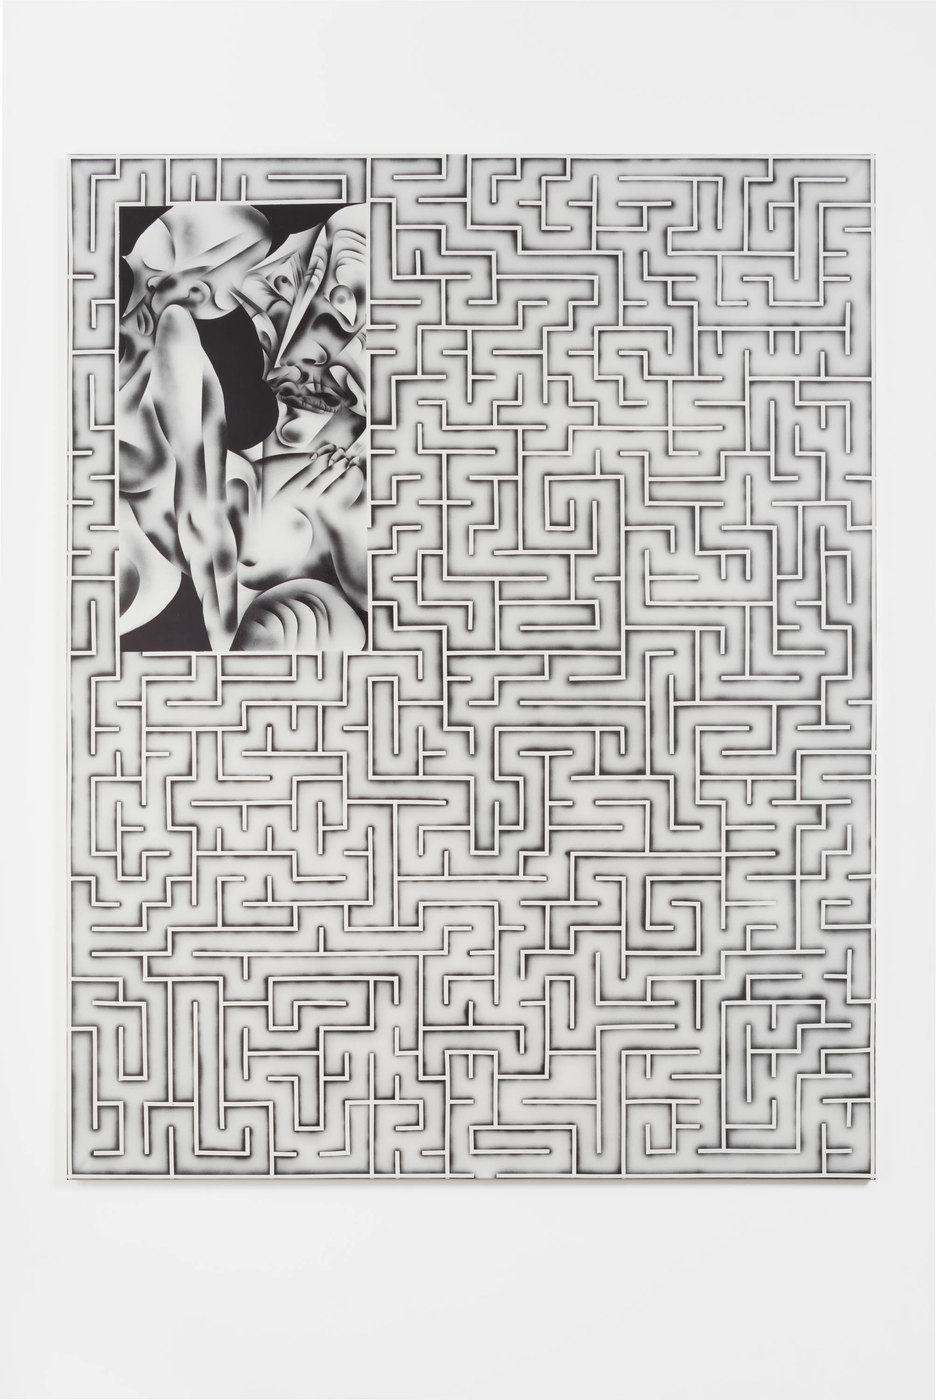 Zoe Barcza, Erotic Maze Painting (Young Lady and Witch, Acrylic on canvas, 65 x 51 in, 165 x 130 cm